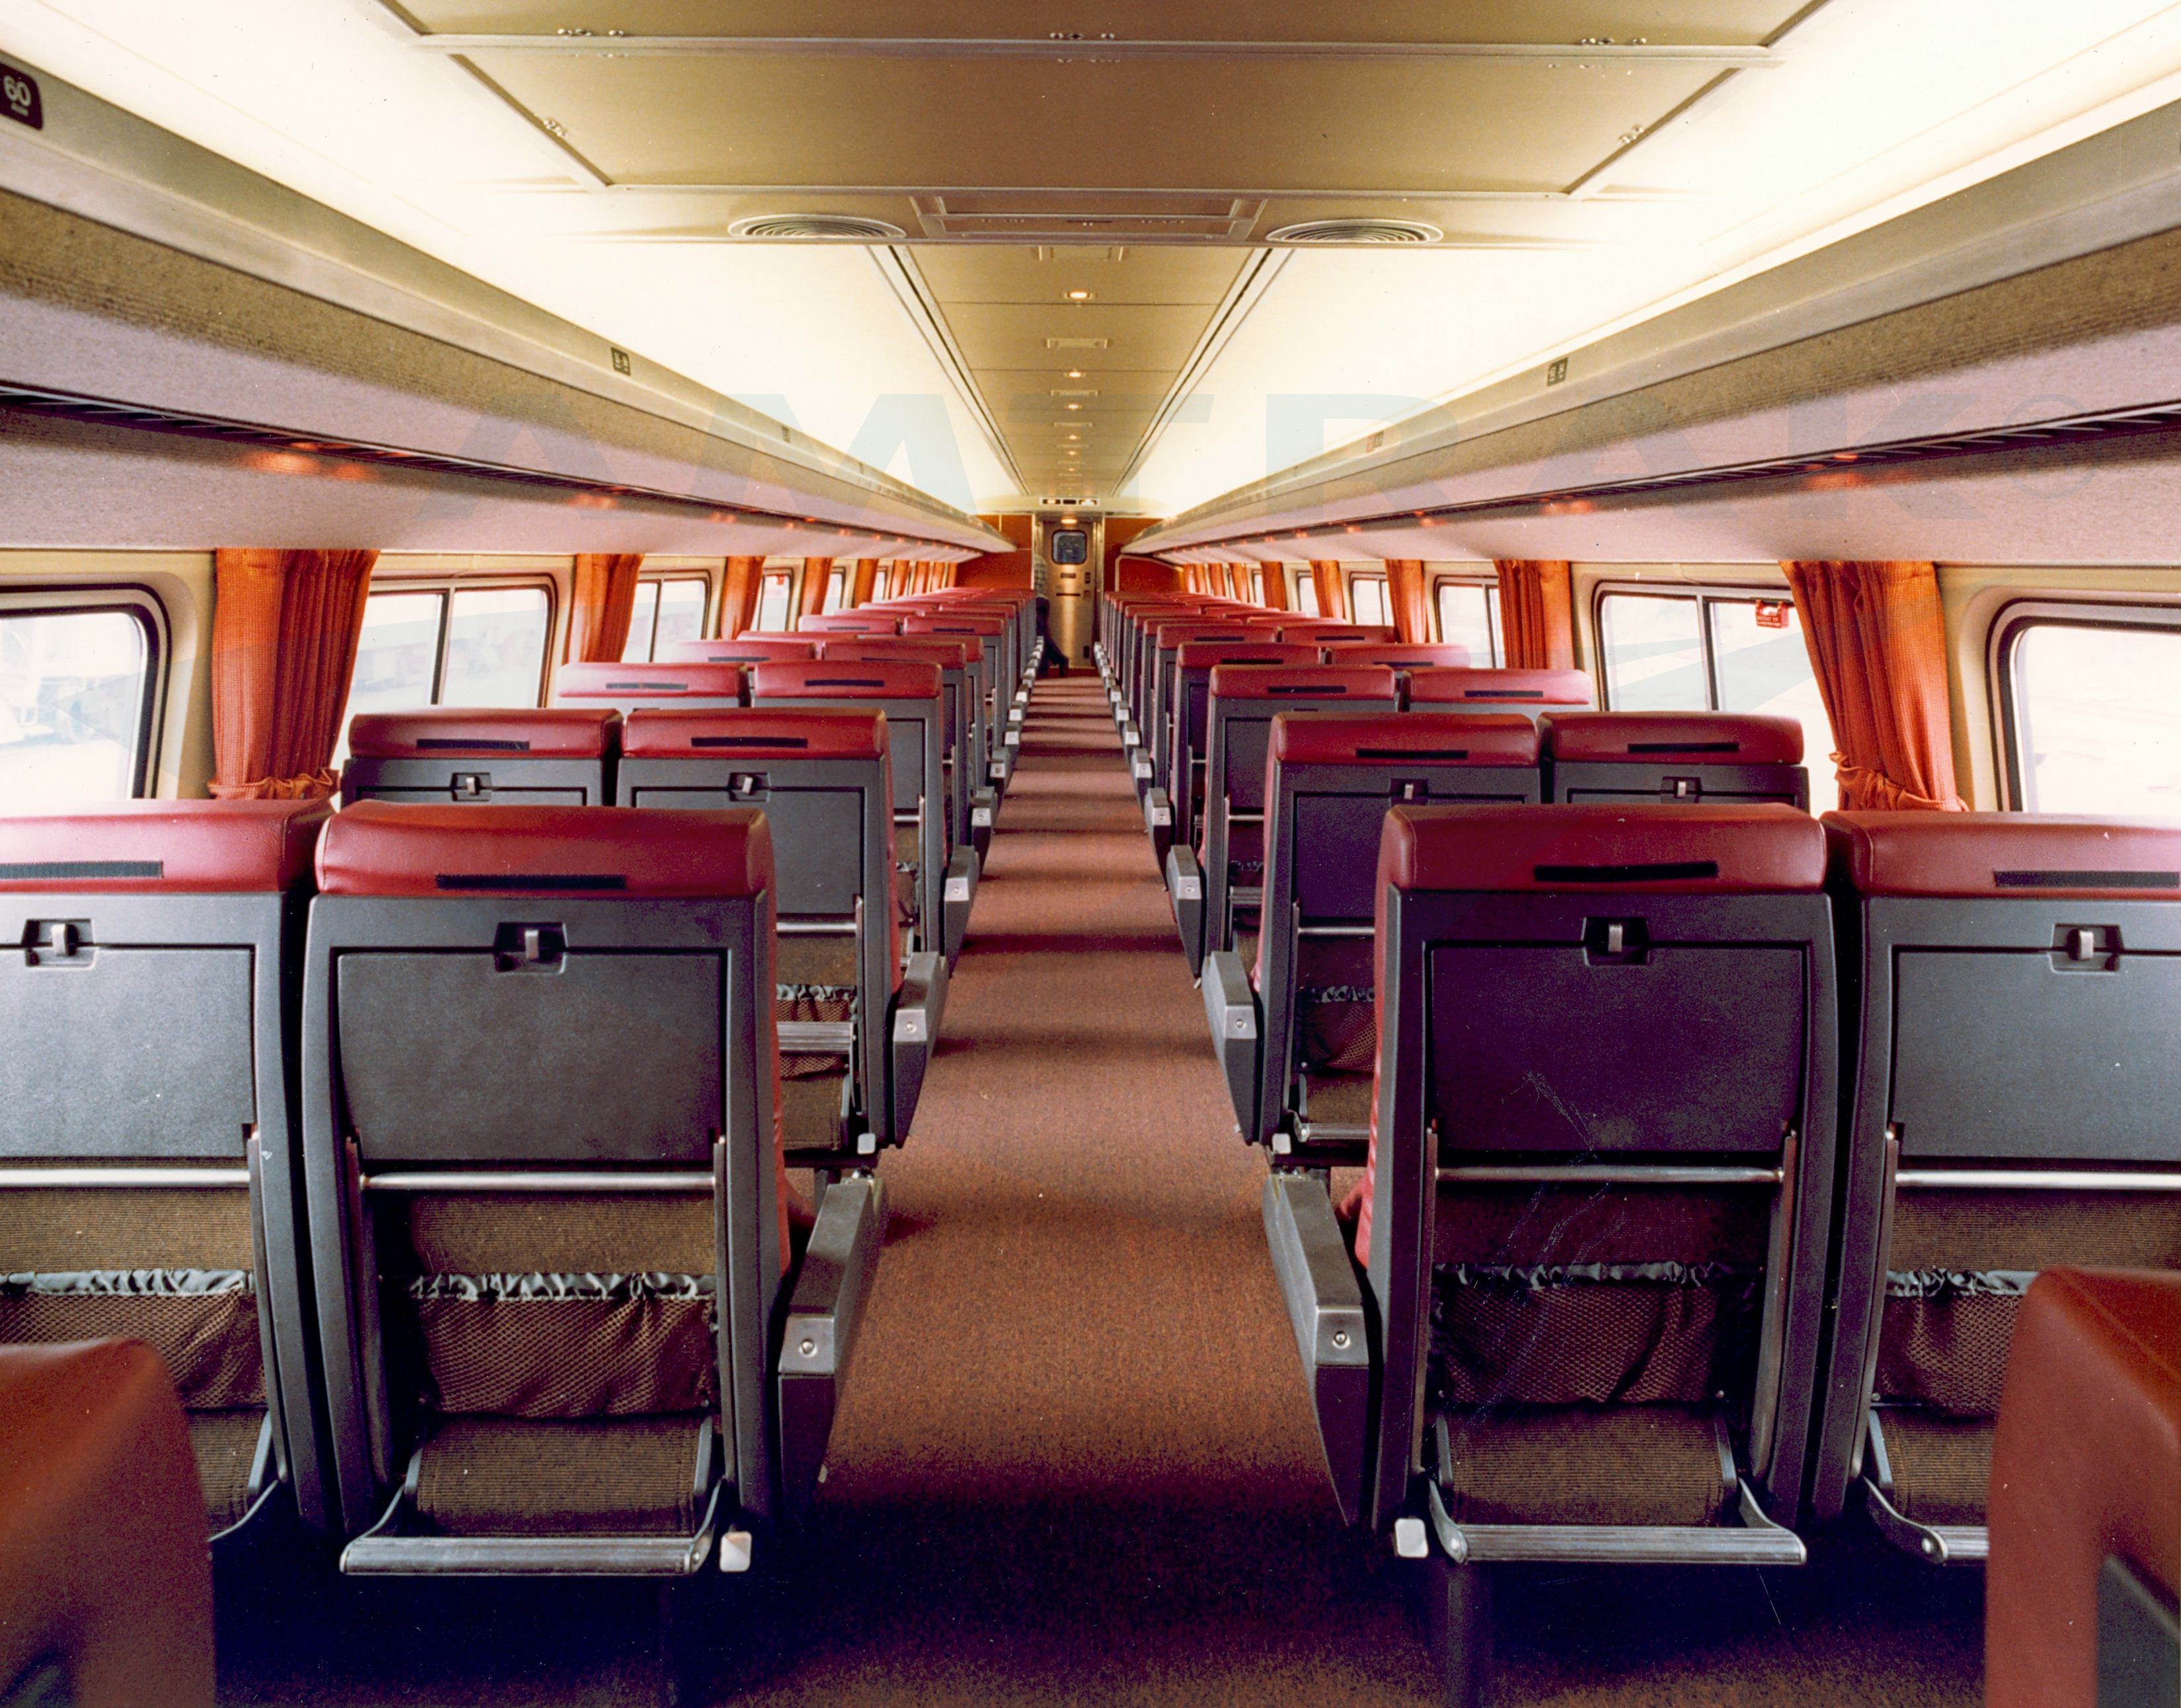 Amfleet ii coach interior 1980s amtrak history of for Interior images